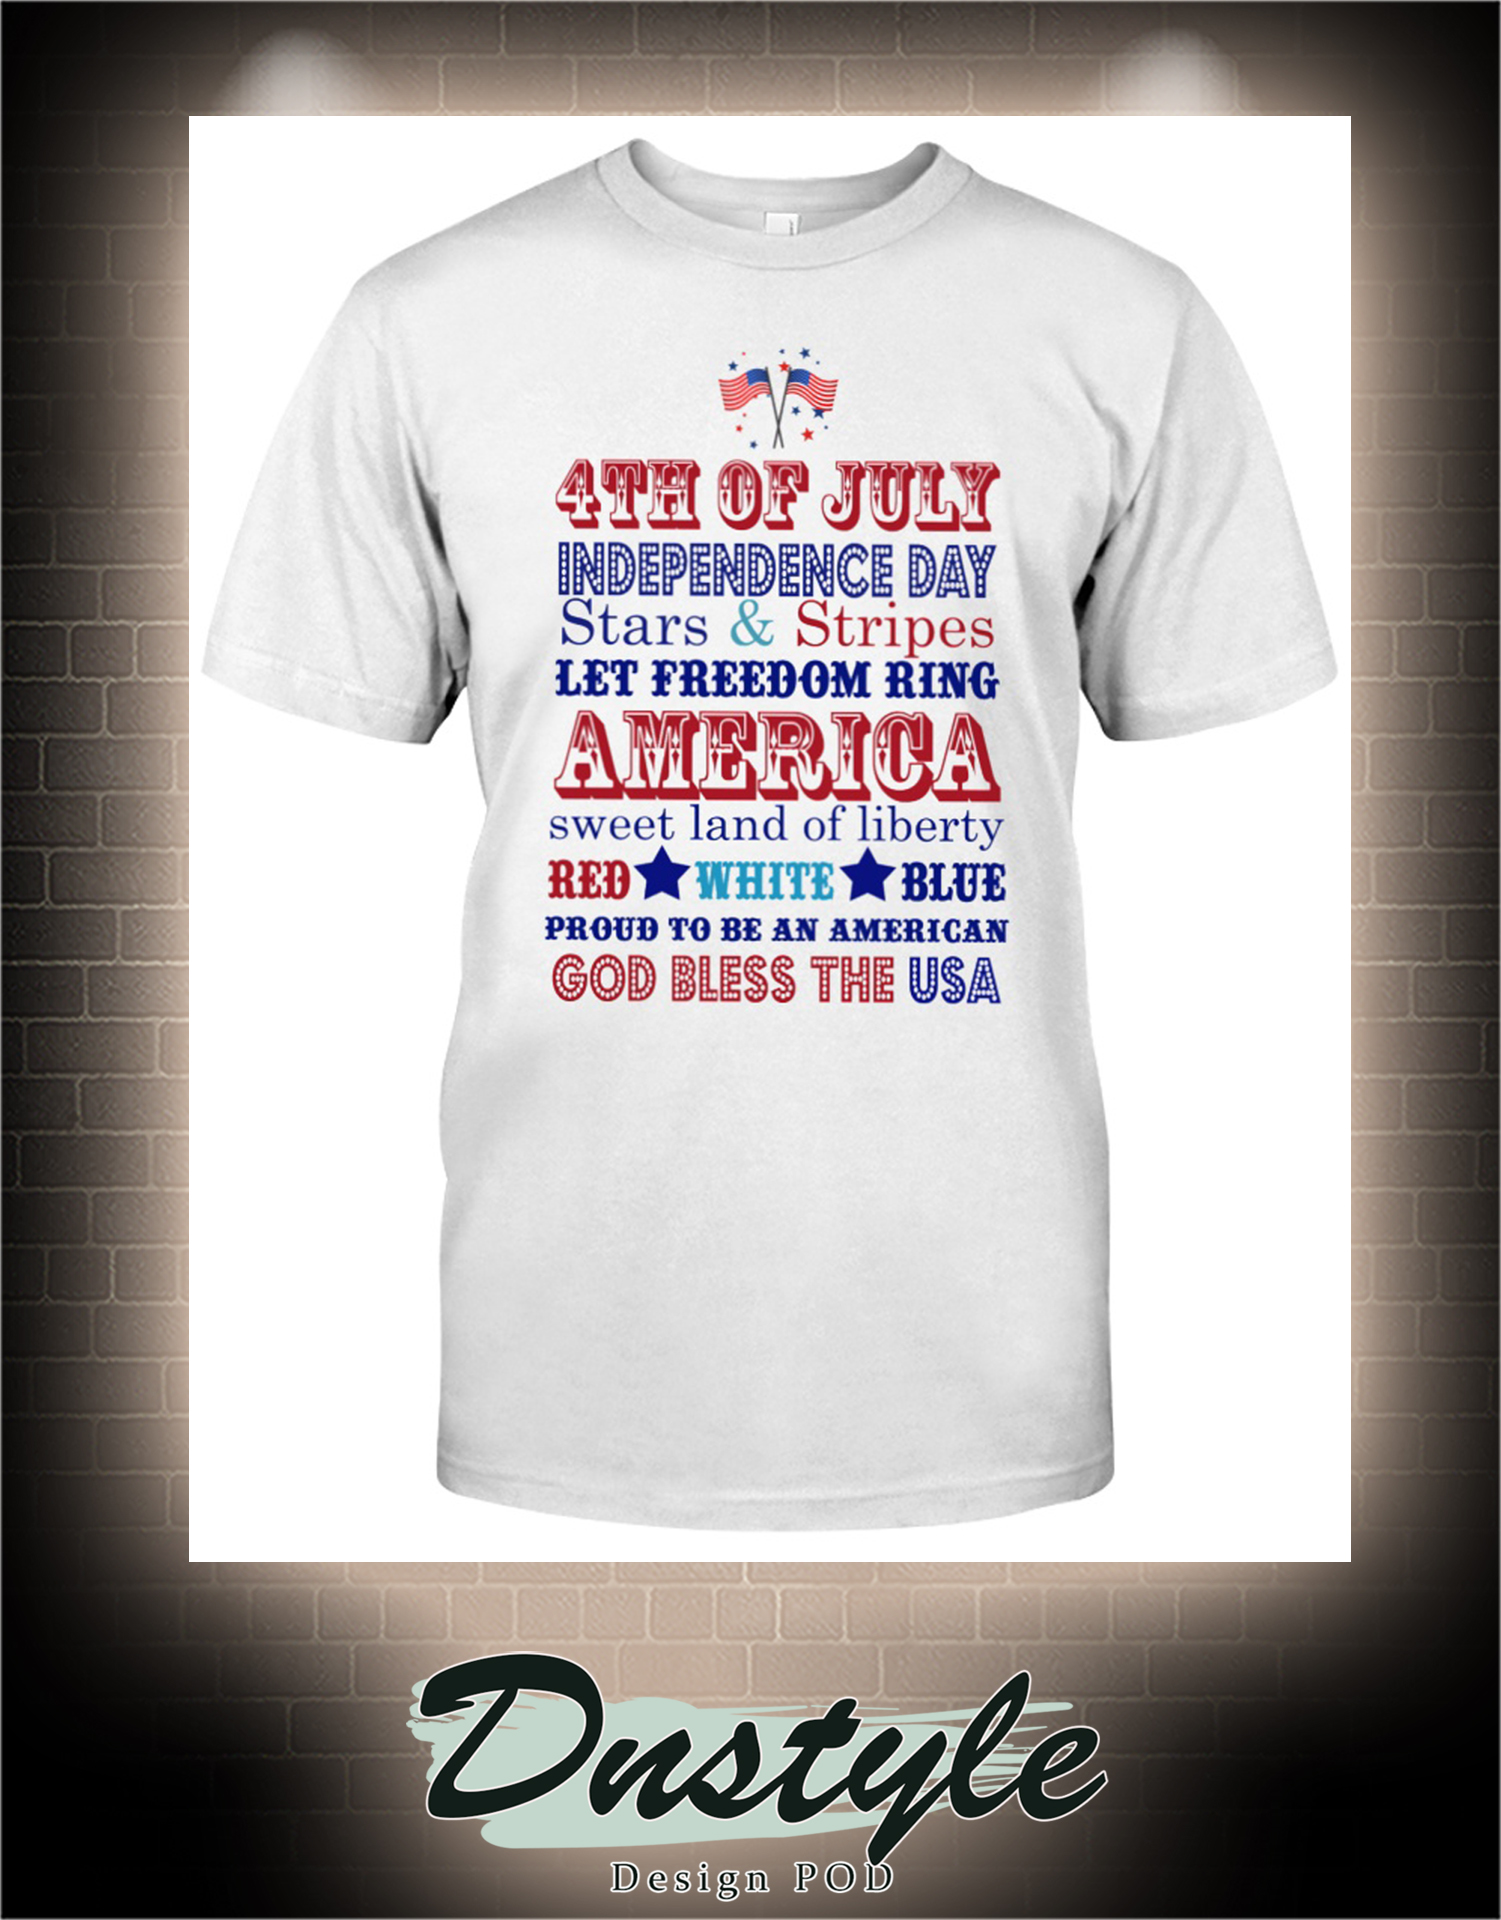 4th of july independence day stars and stripes let freedom ring america t-shirt